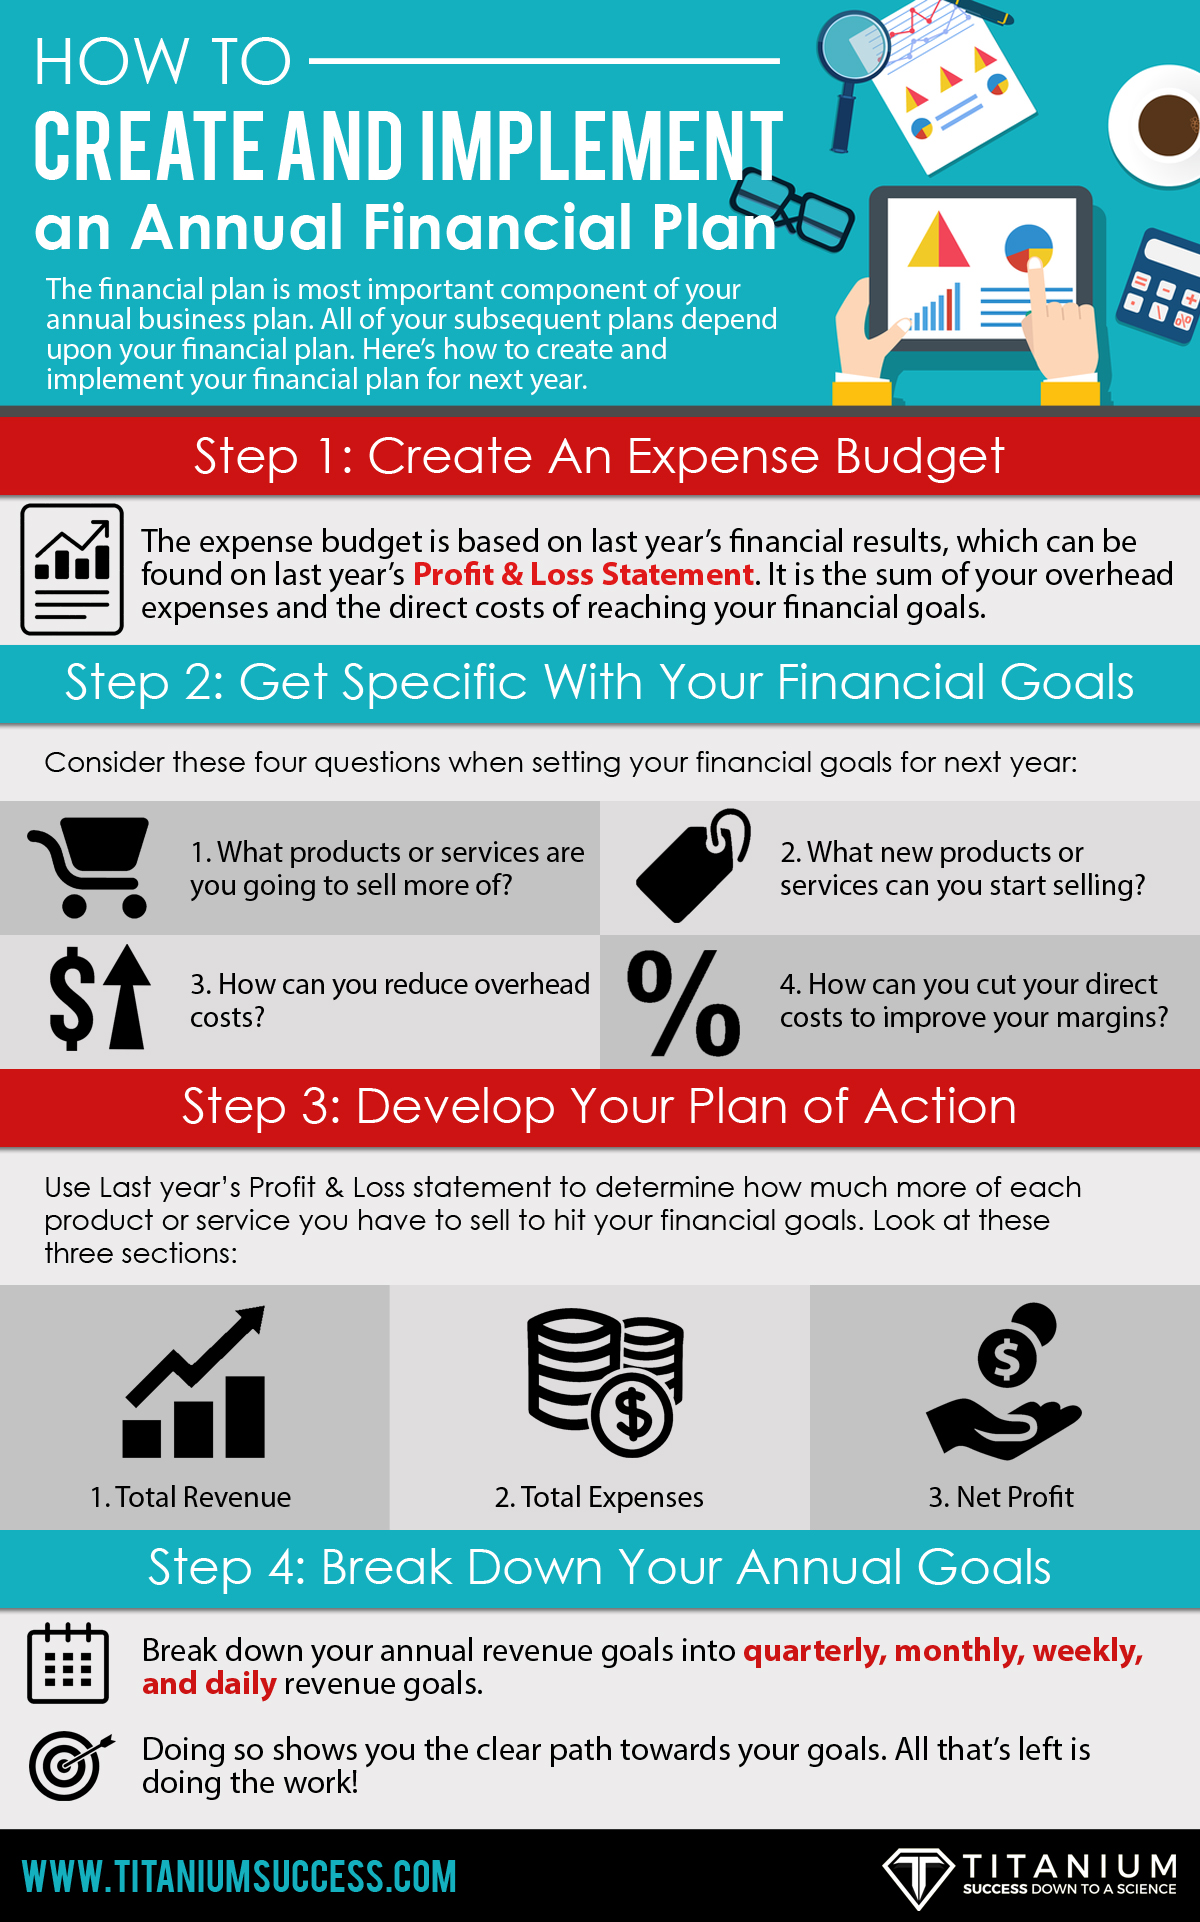 How to Create and Implement an Annual Financial Plan Infographic - TS